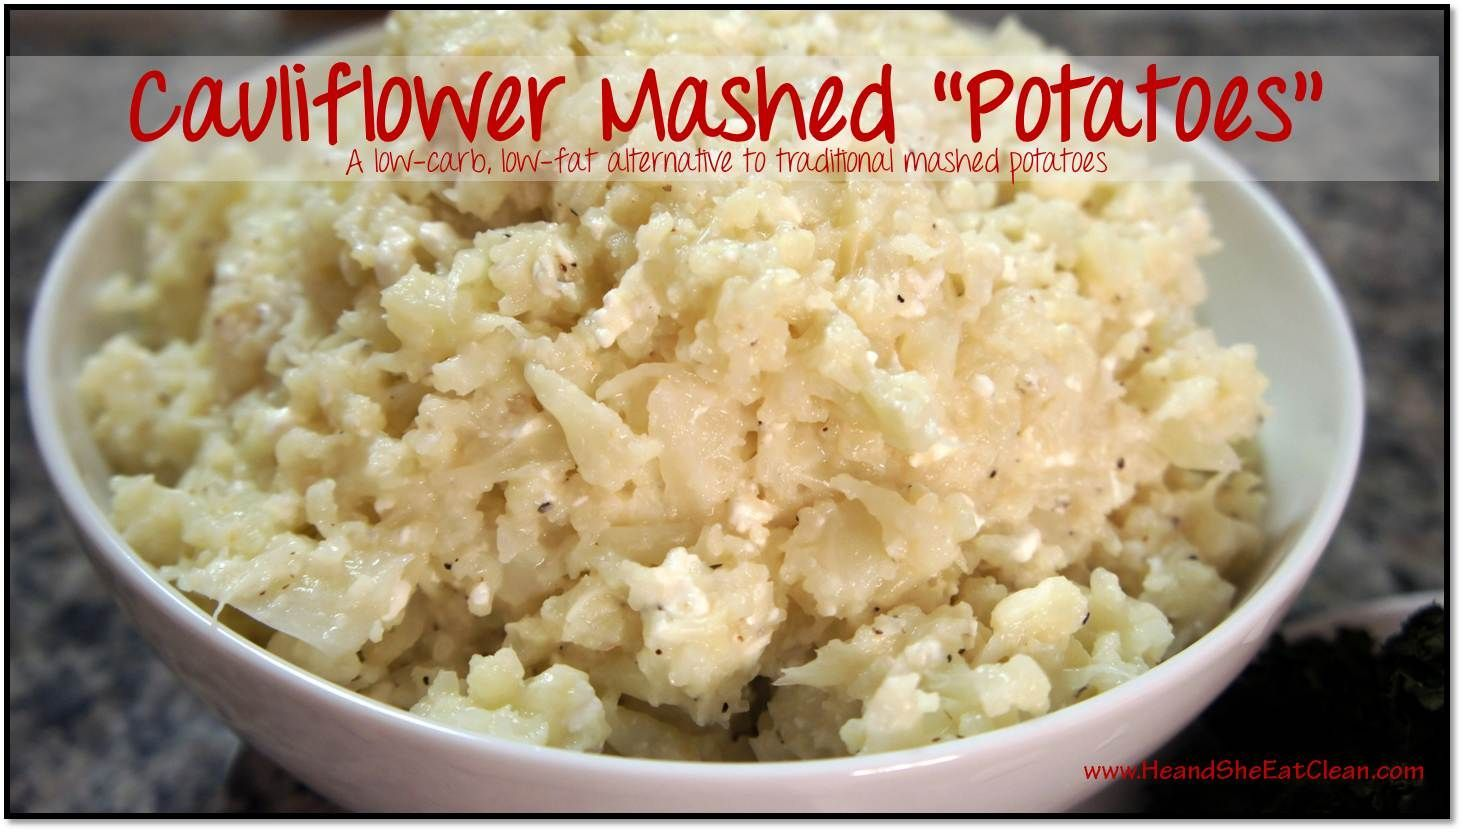 #cauliflower #potatoes #eatclean #fitness #healthy #workout #veggies #amazing #lowcarb #recipe #mash...